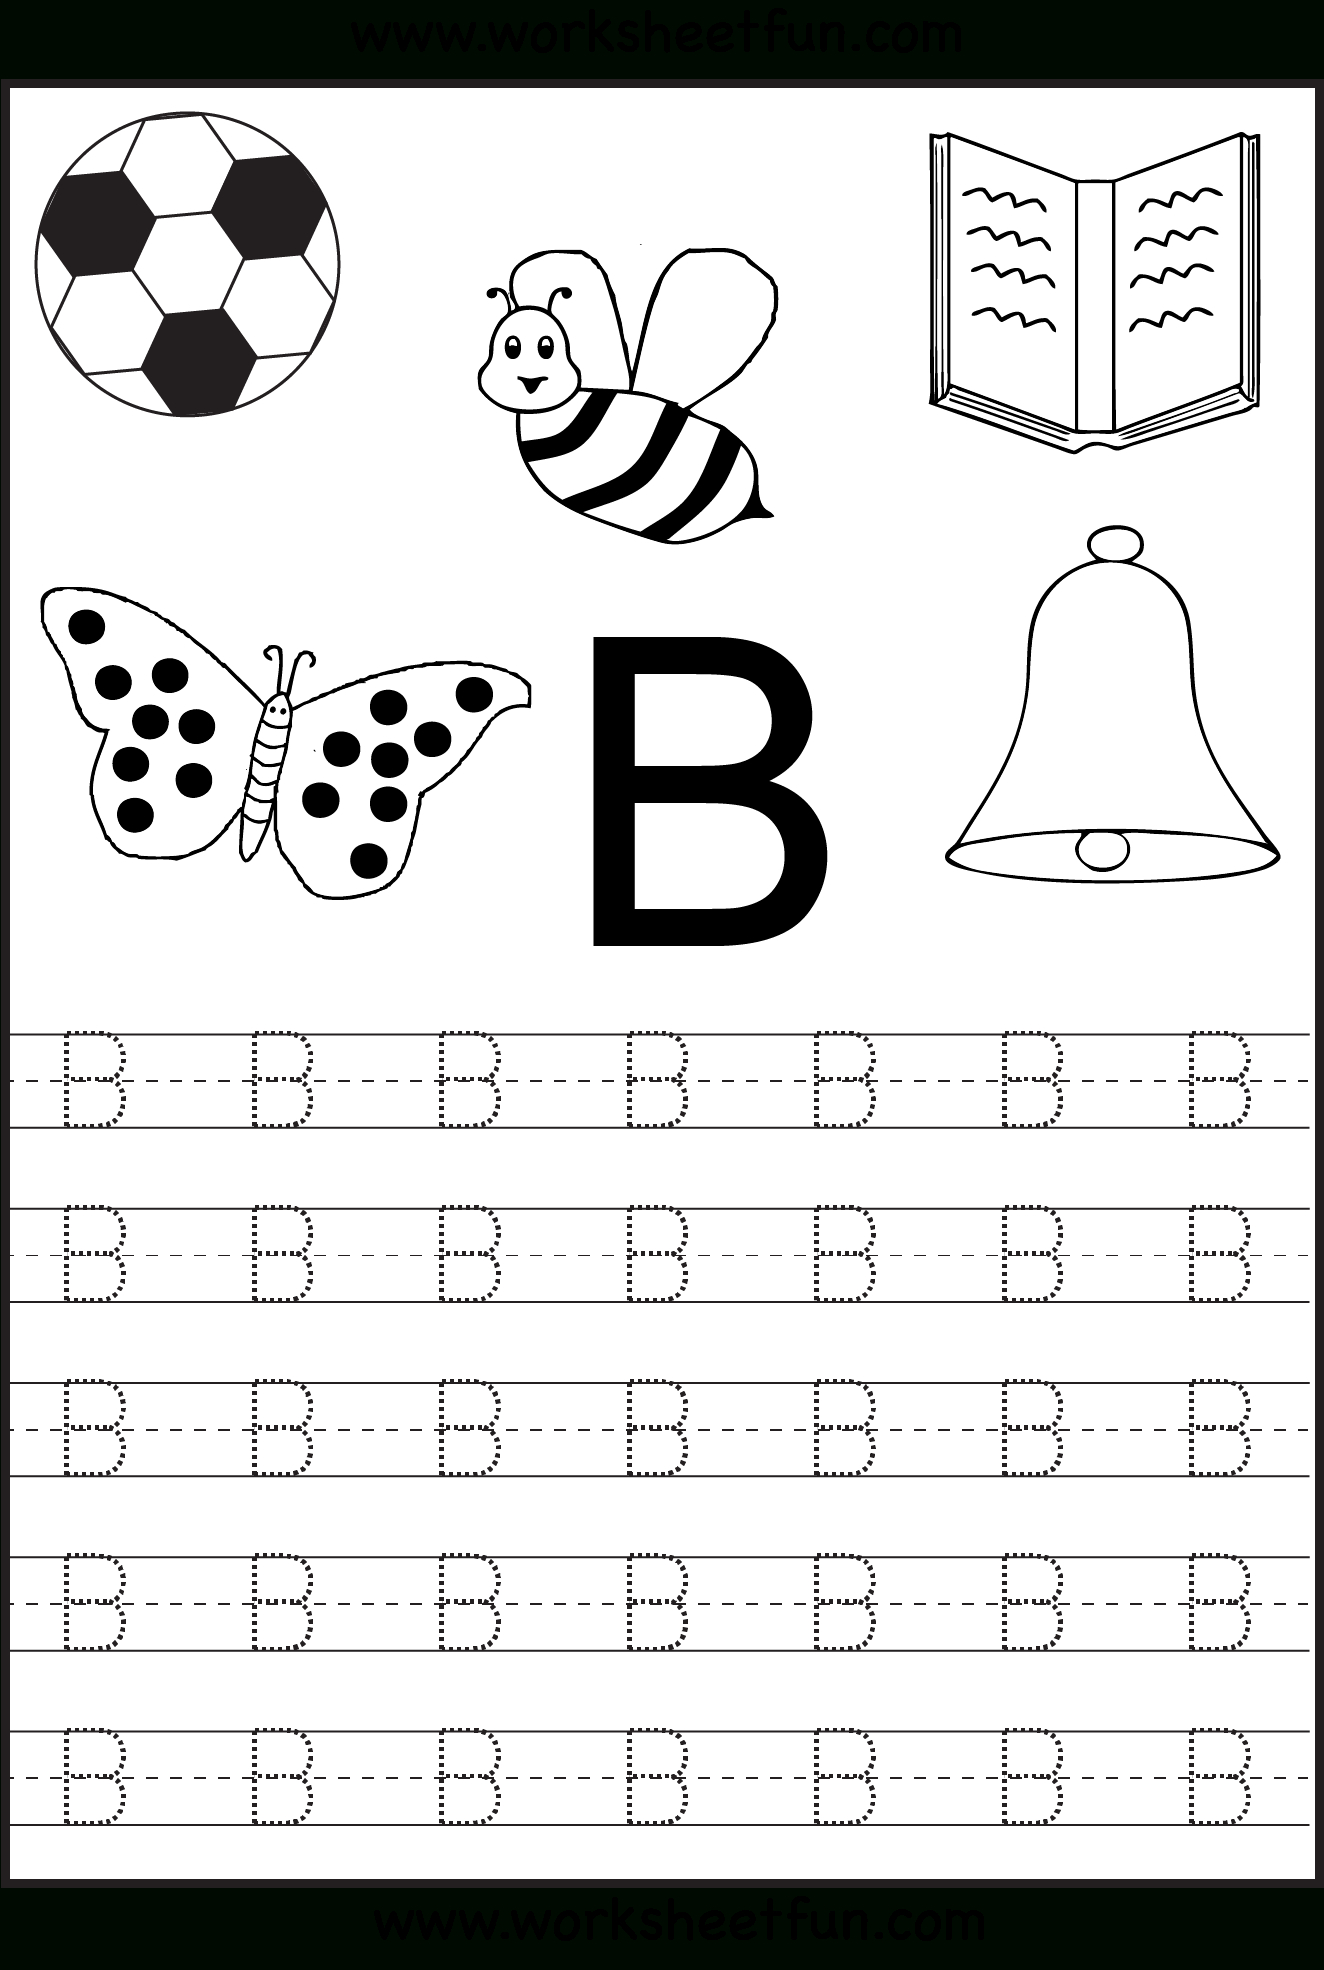 Free Printable Letter Tracing Worksheets For Kindergarten intended for Tracing Letters Worksheets For Preschool